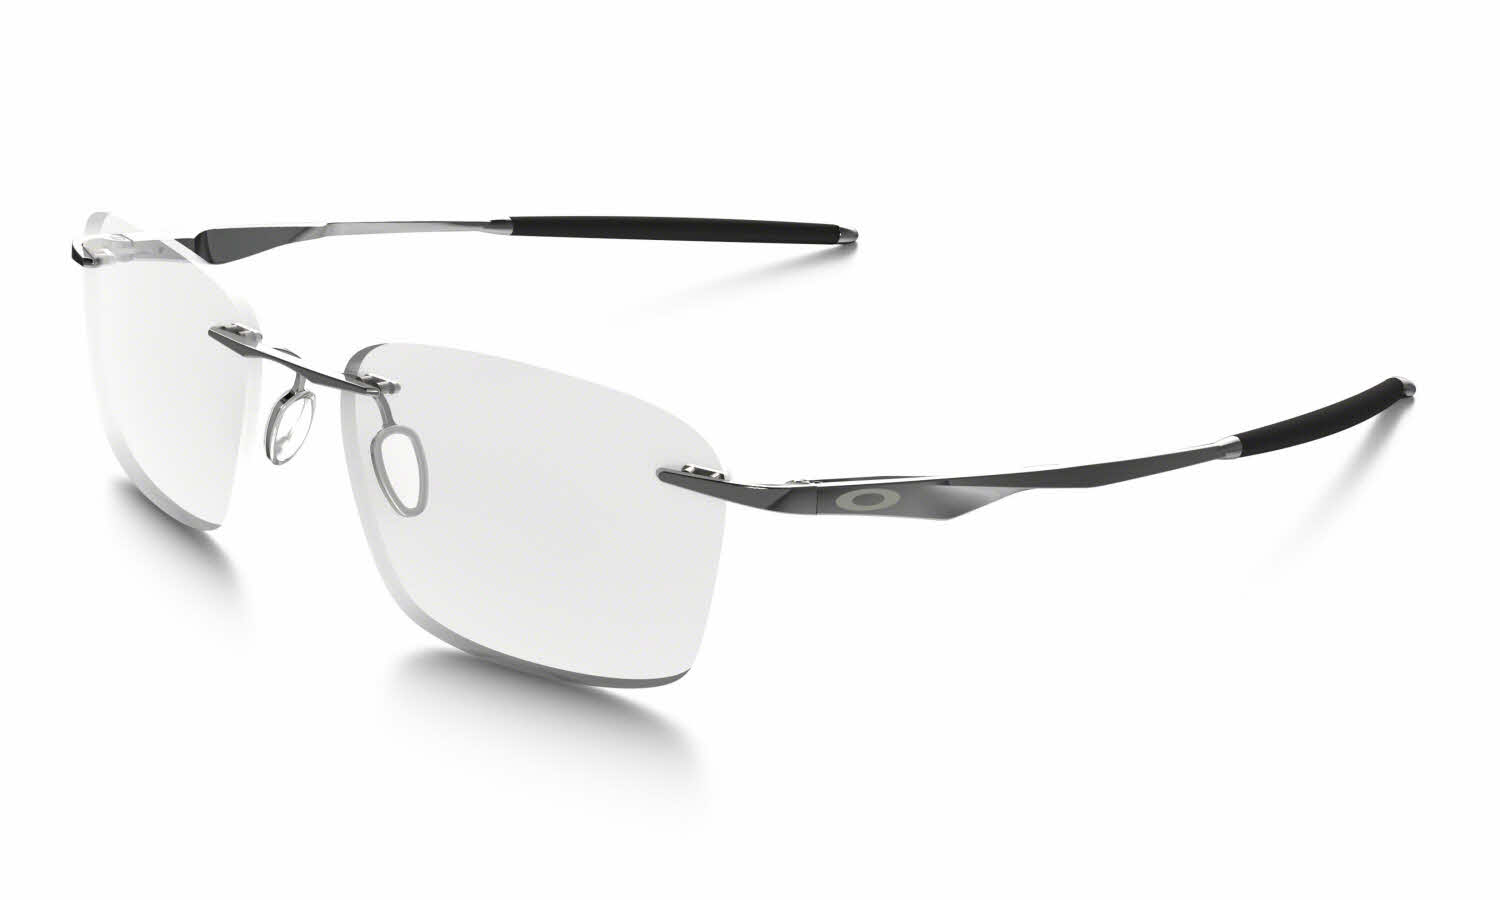 oakley prescription sunglasses uk online  oakley wingfold evs eyeglasses